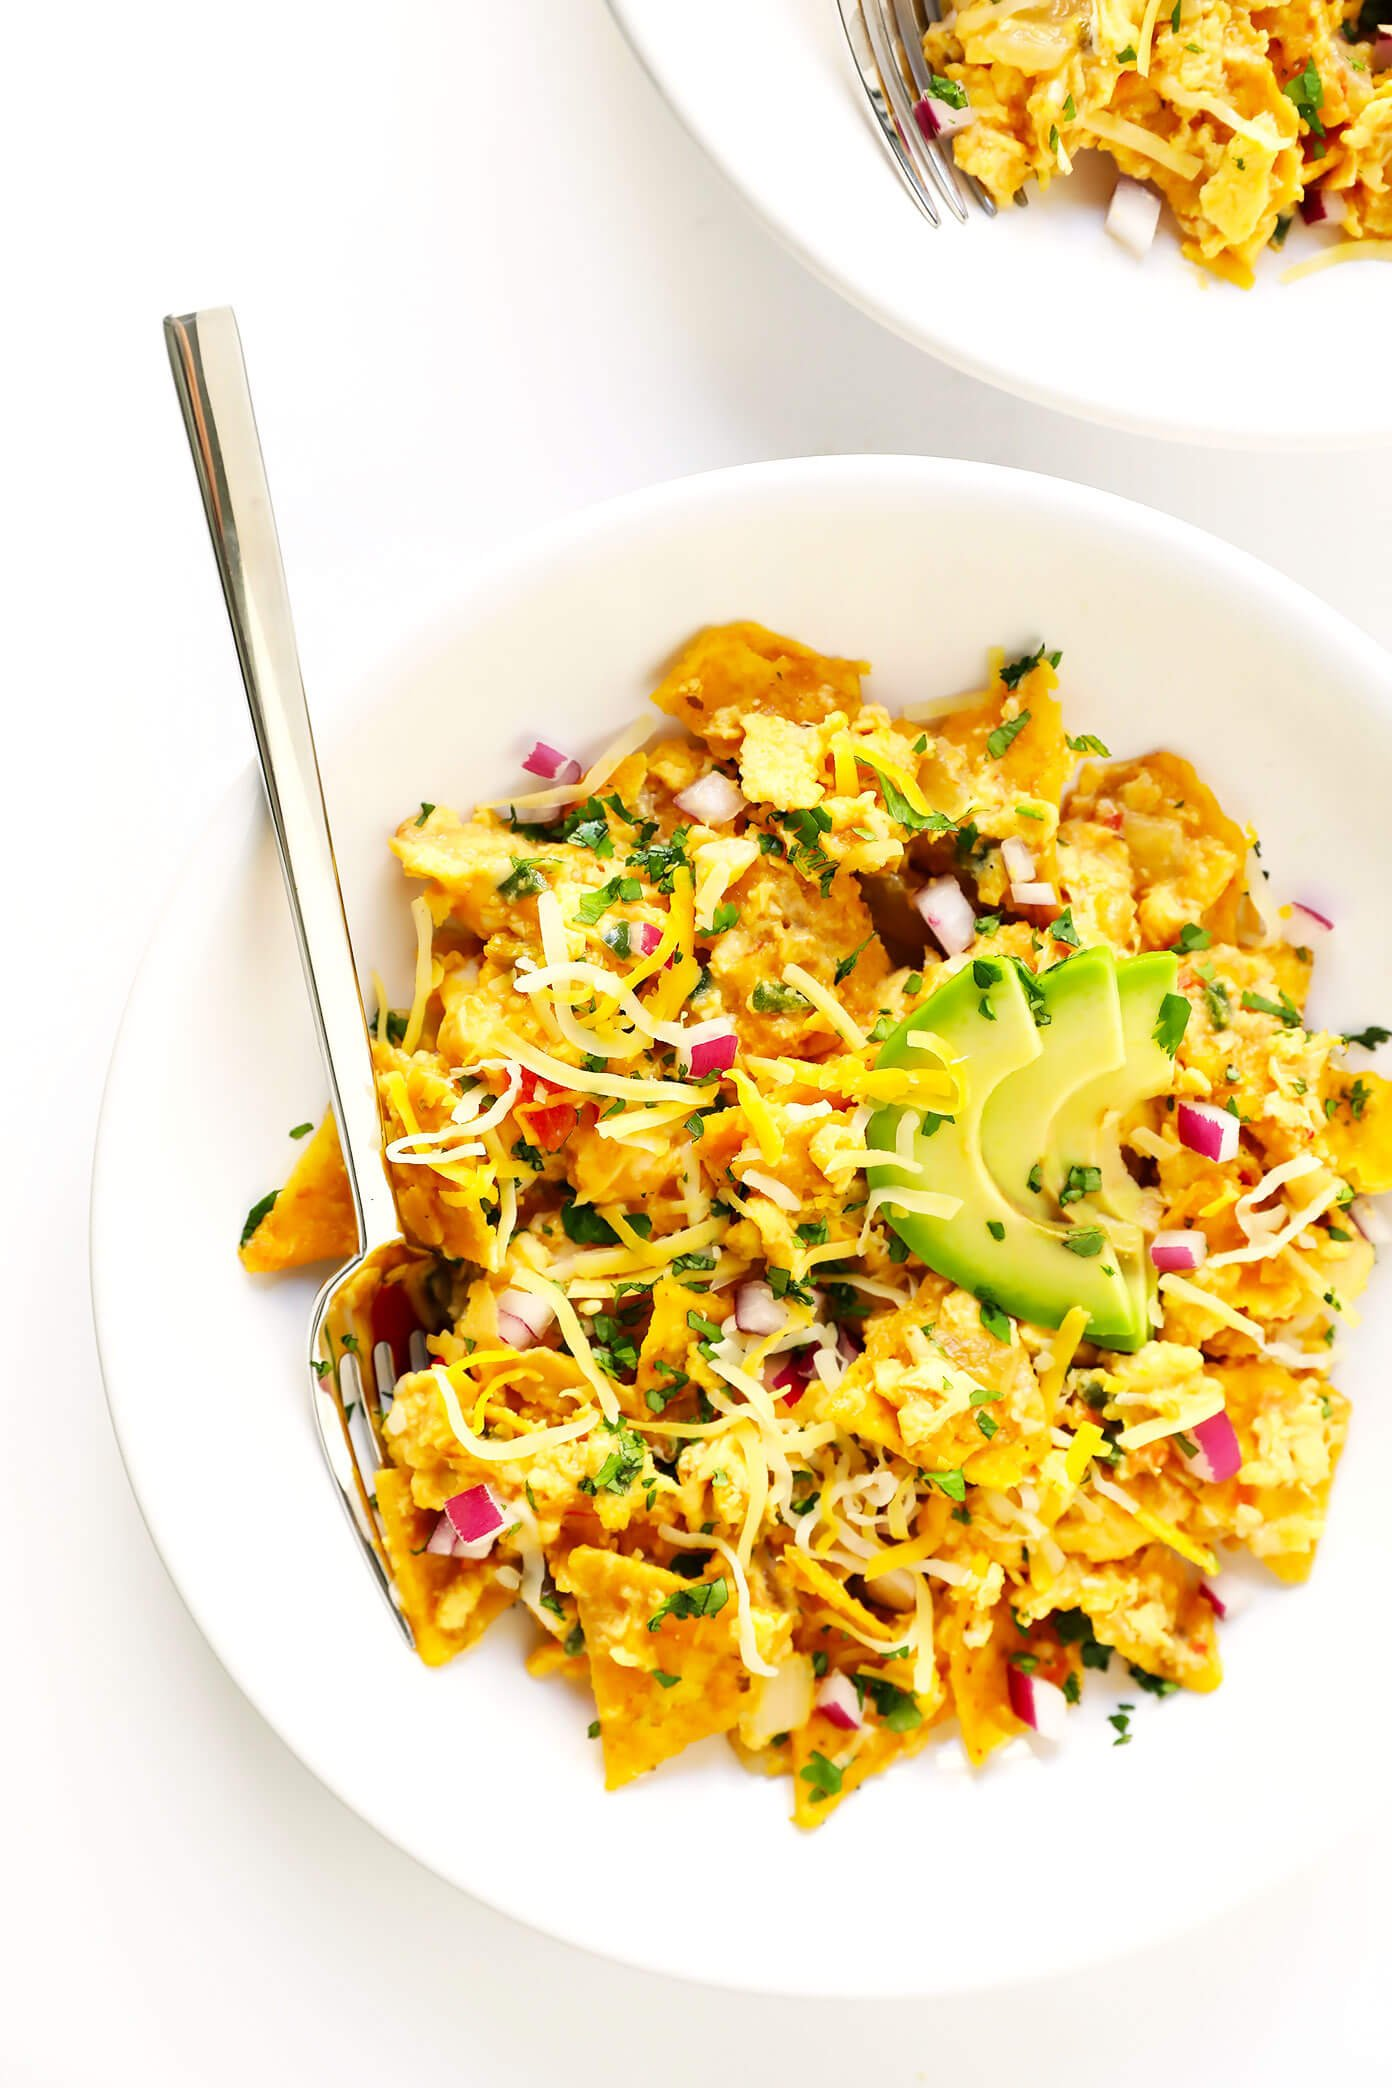 Tex-Mex Migas Recipe with Avocado